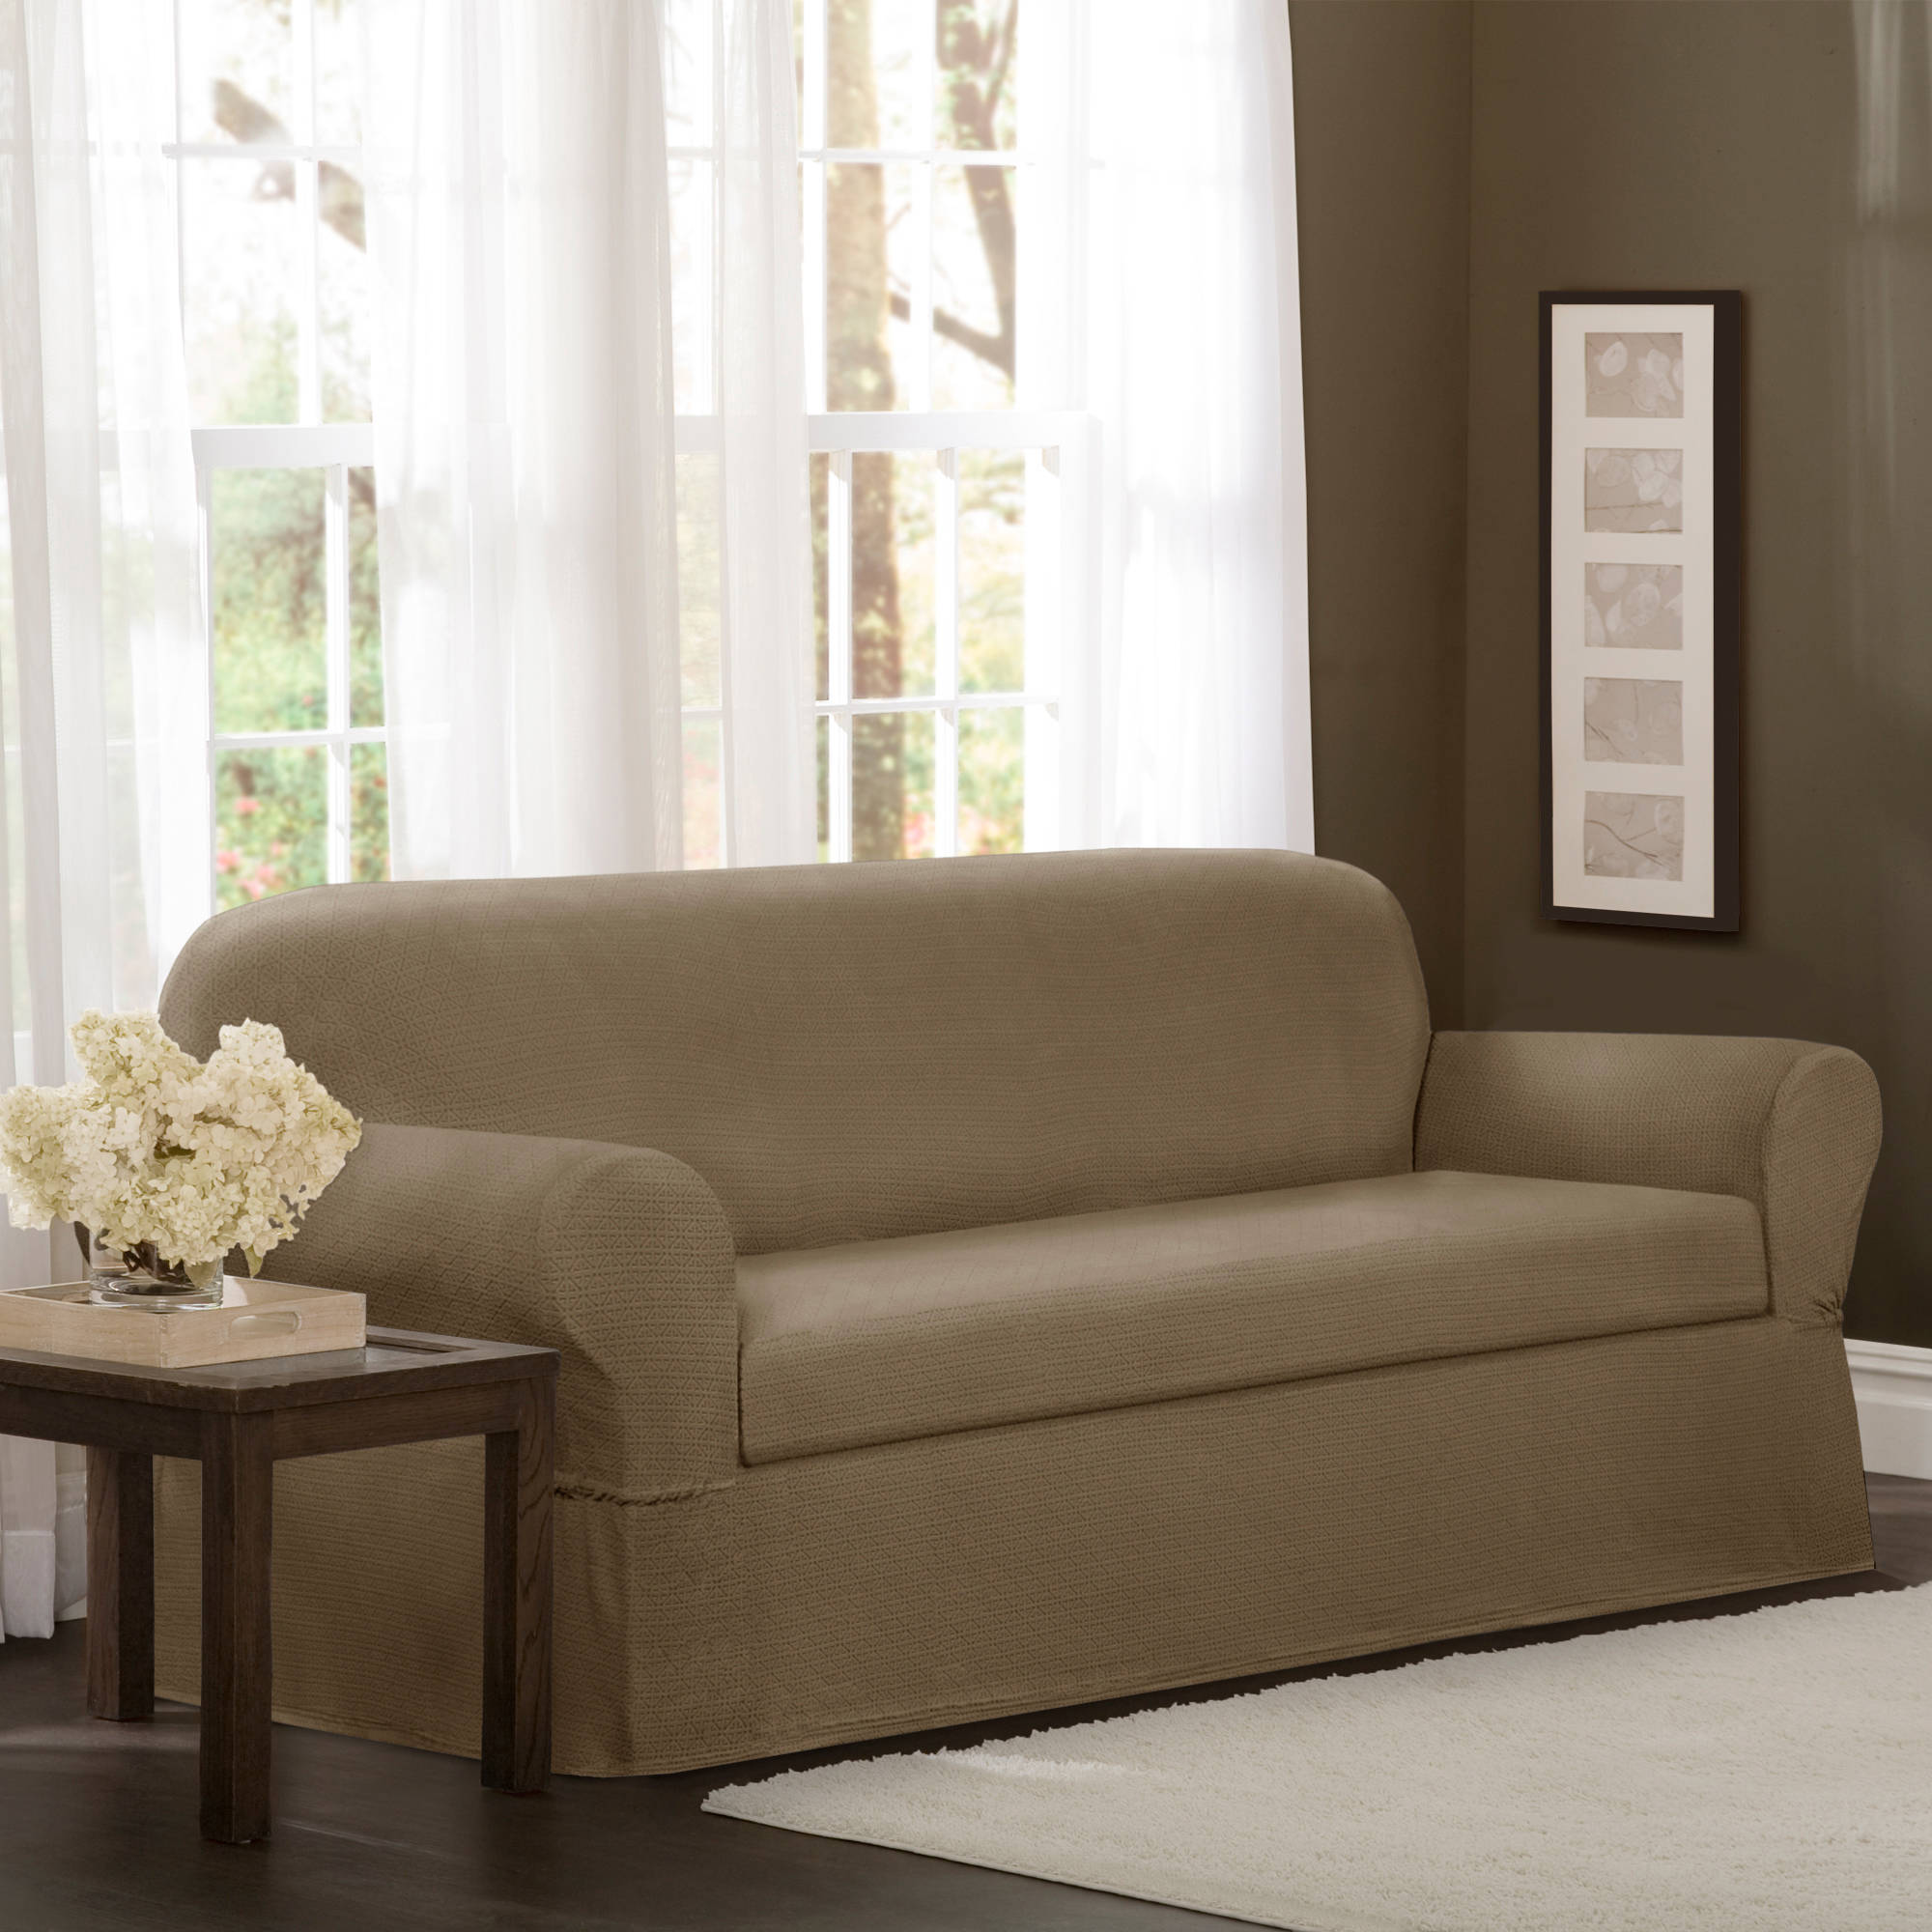 Maytex Stretch Torie 2 Piece Sofa Furniture Cover